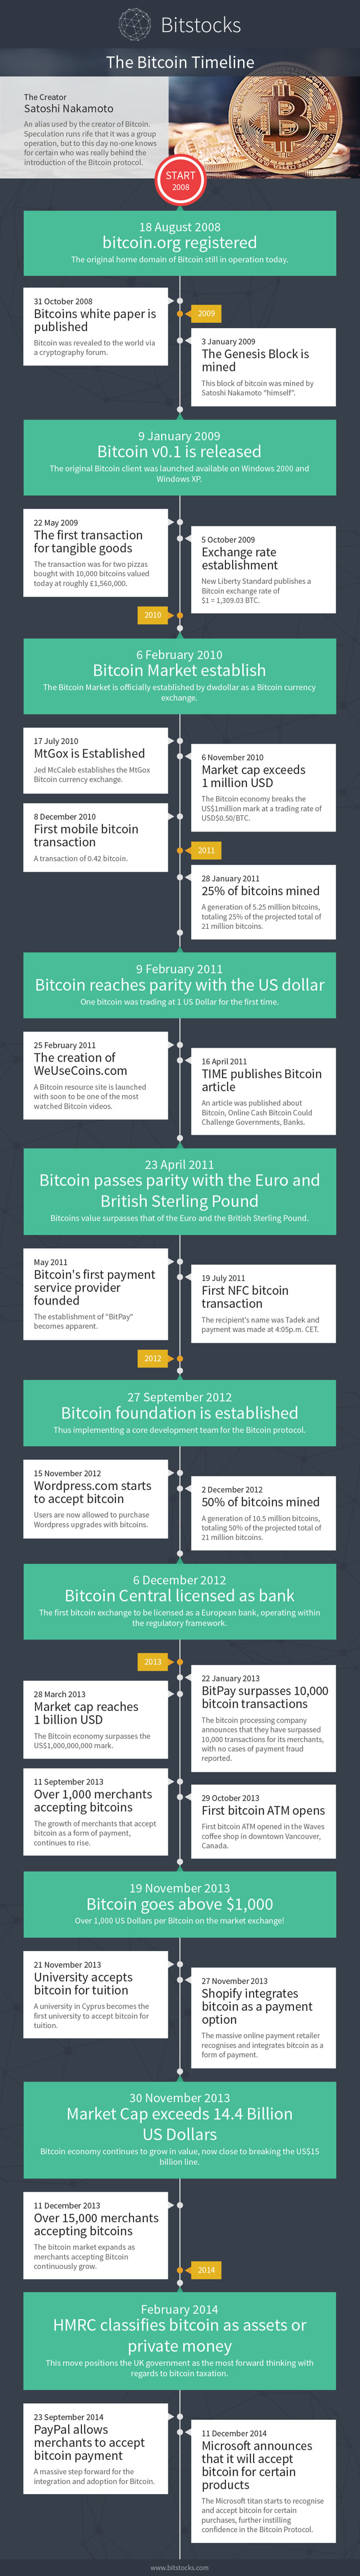 Infographic- the Bitcoin Timeline